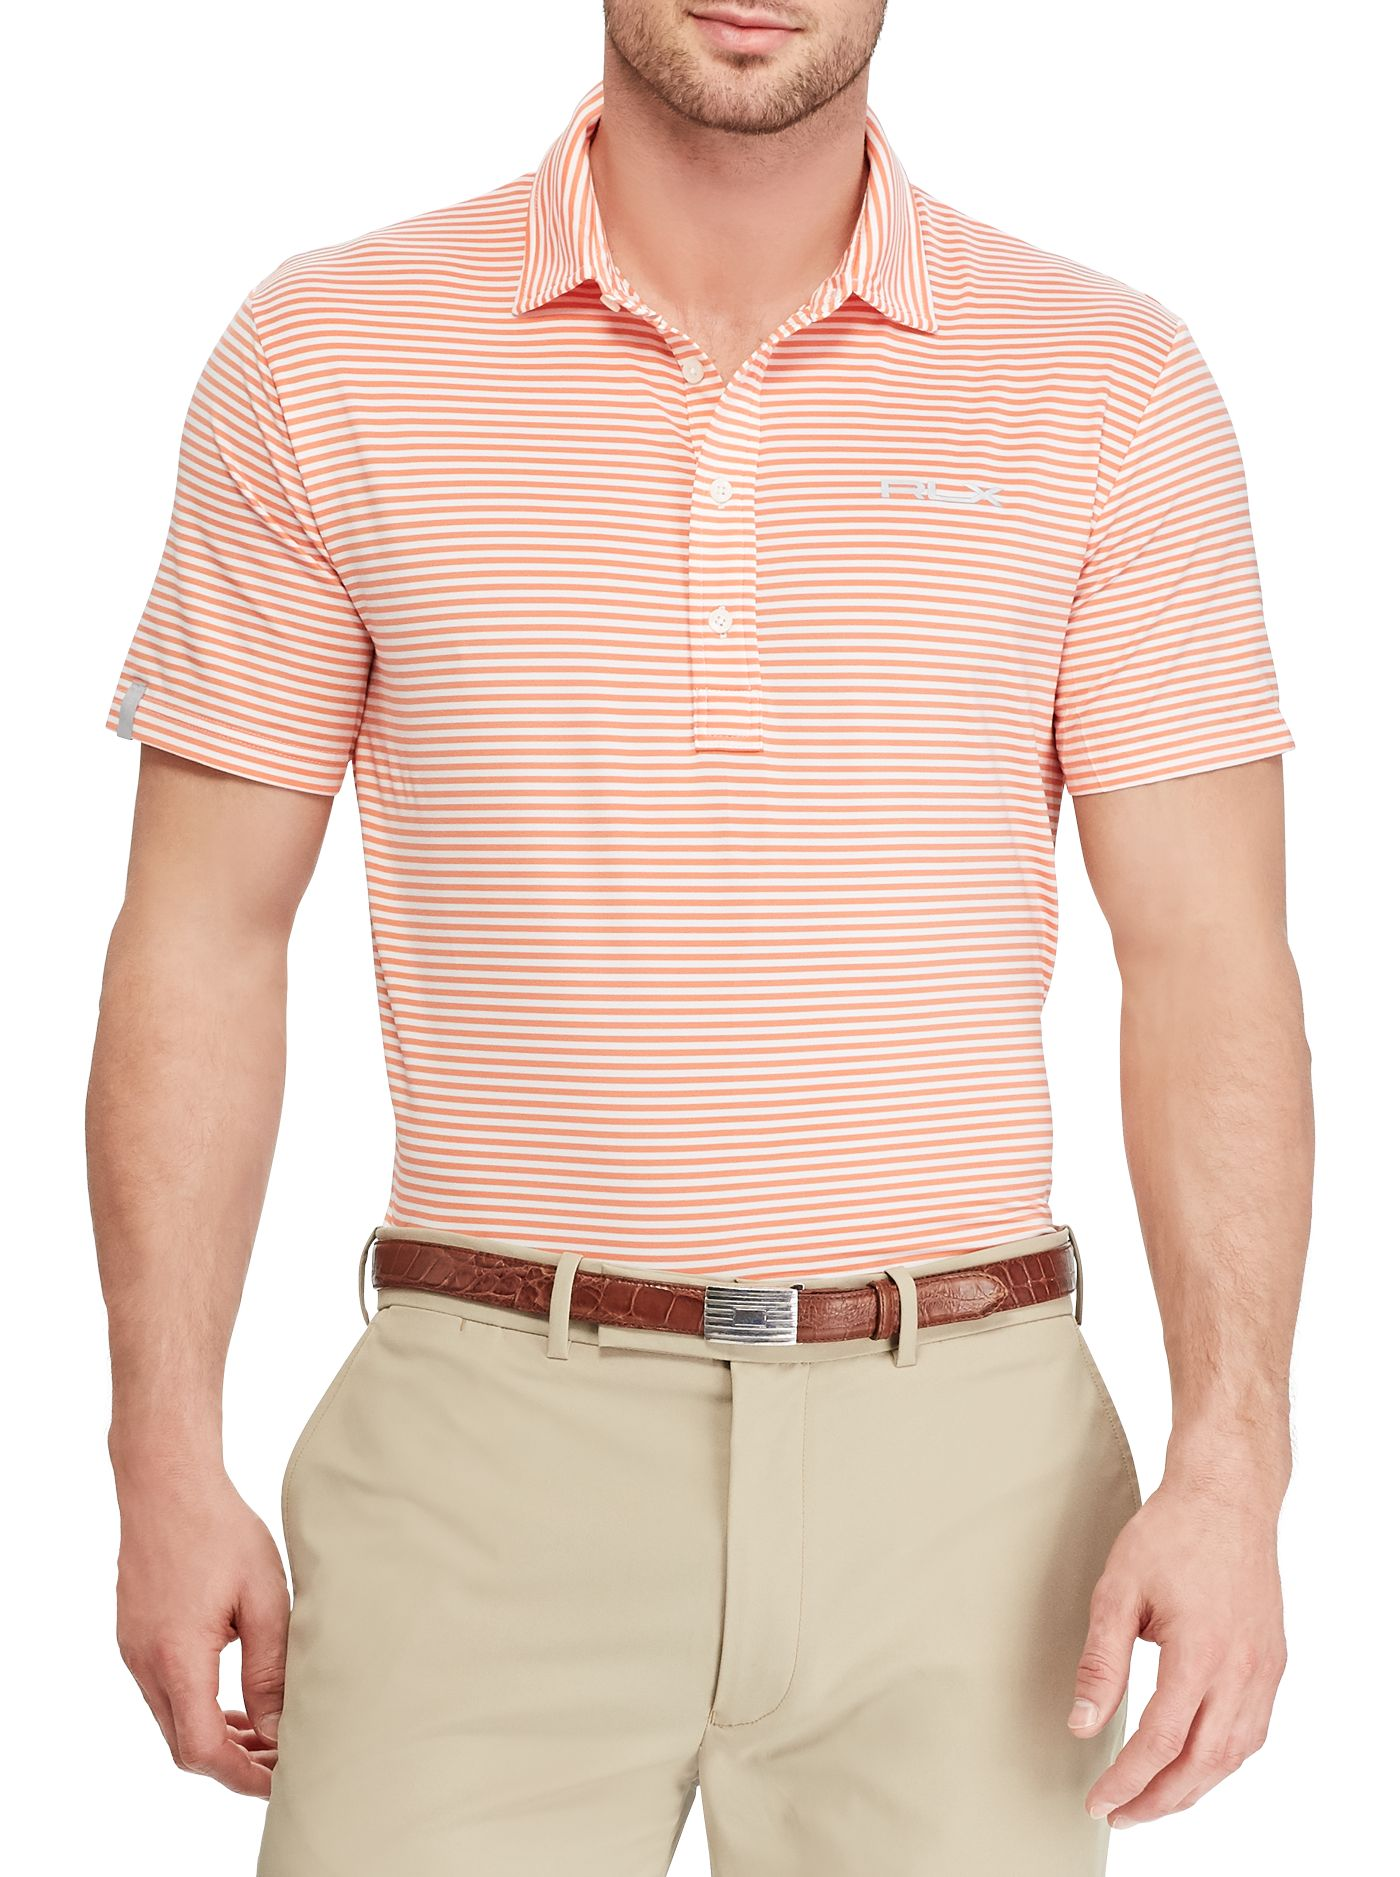 RLX Golf Men's Short Sleeve Striped Airflow Performance Golf Polo